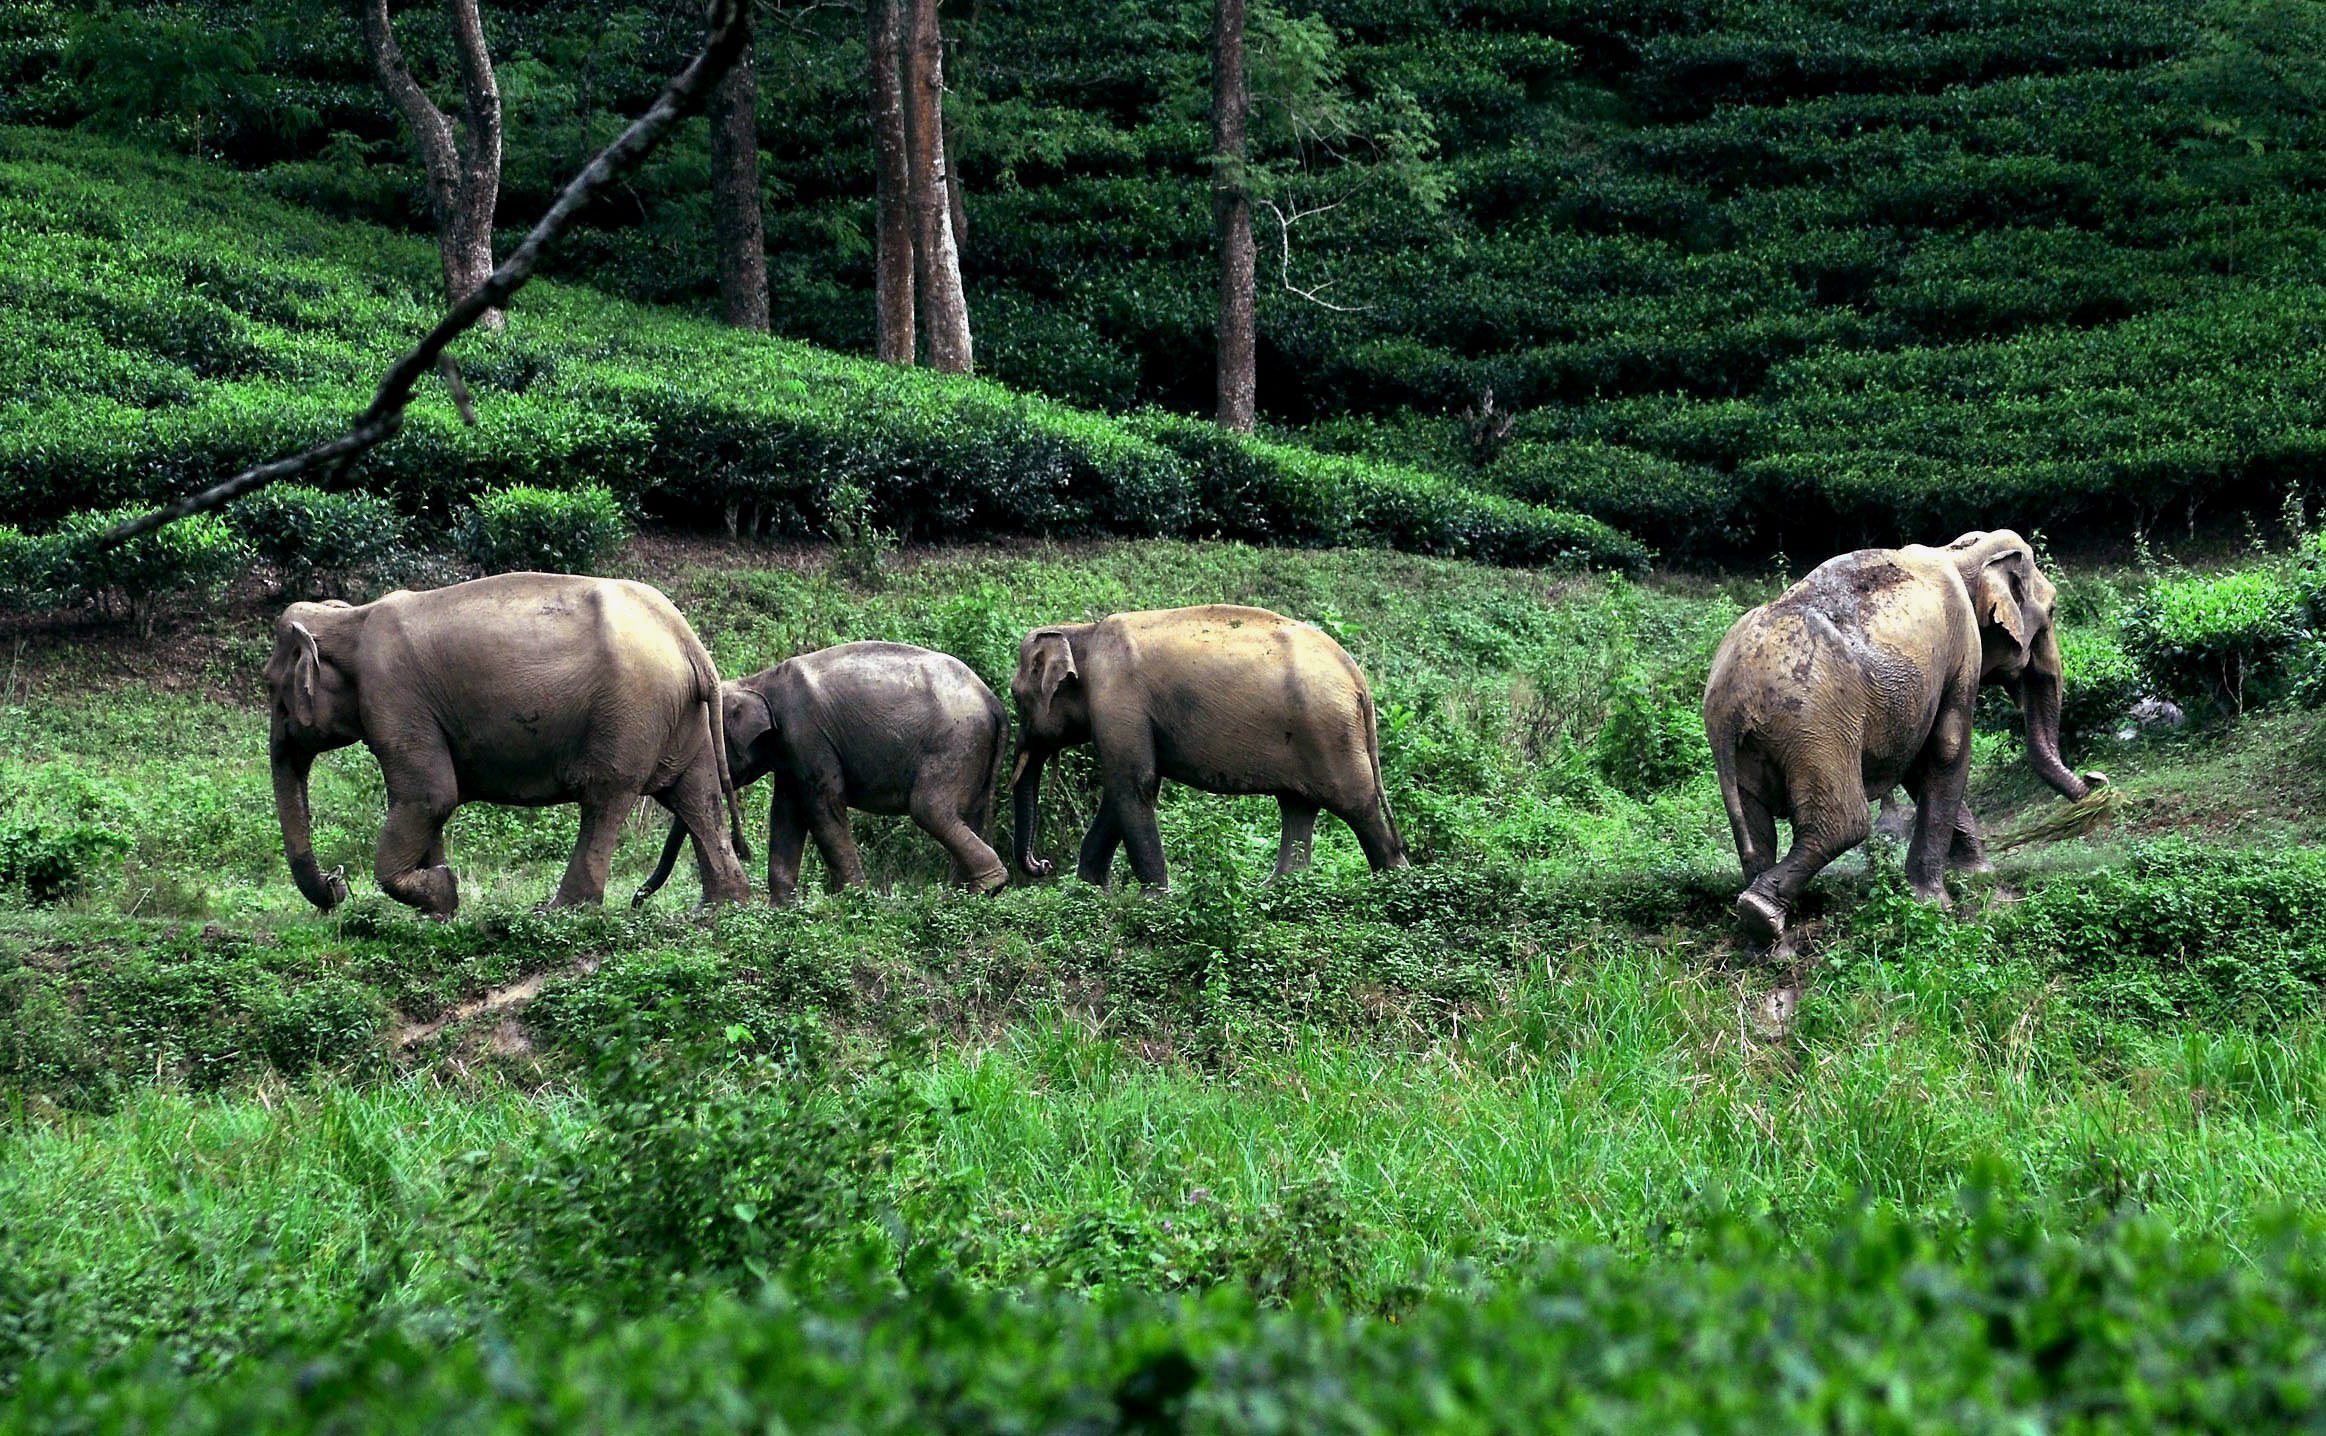 Elephants take shelter on higher ground at the Kaziranga National Park. (Credit: PTI)